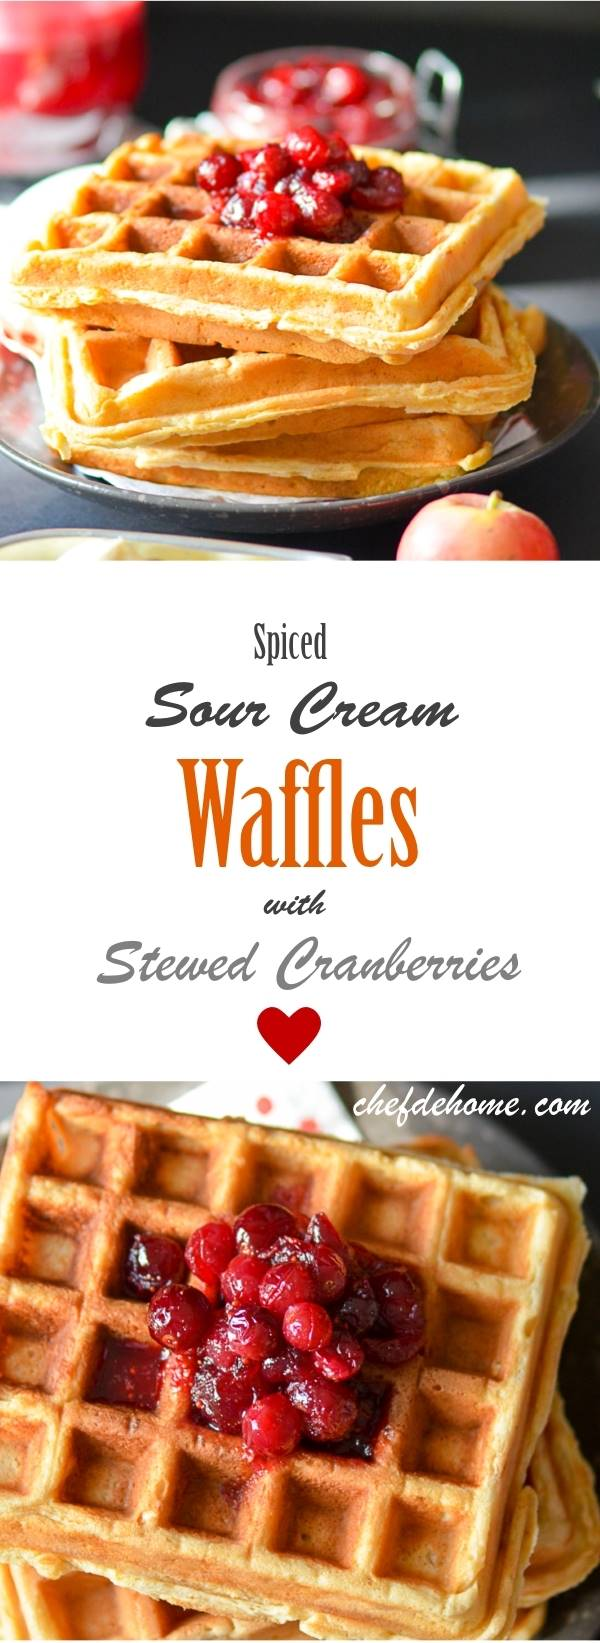 Spiced Waffles with Stewed Cranberries | chefdehome.com